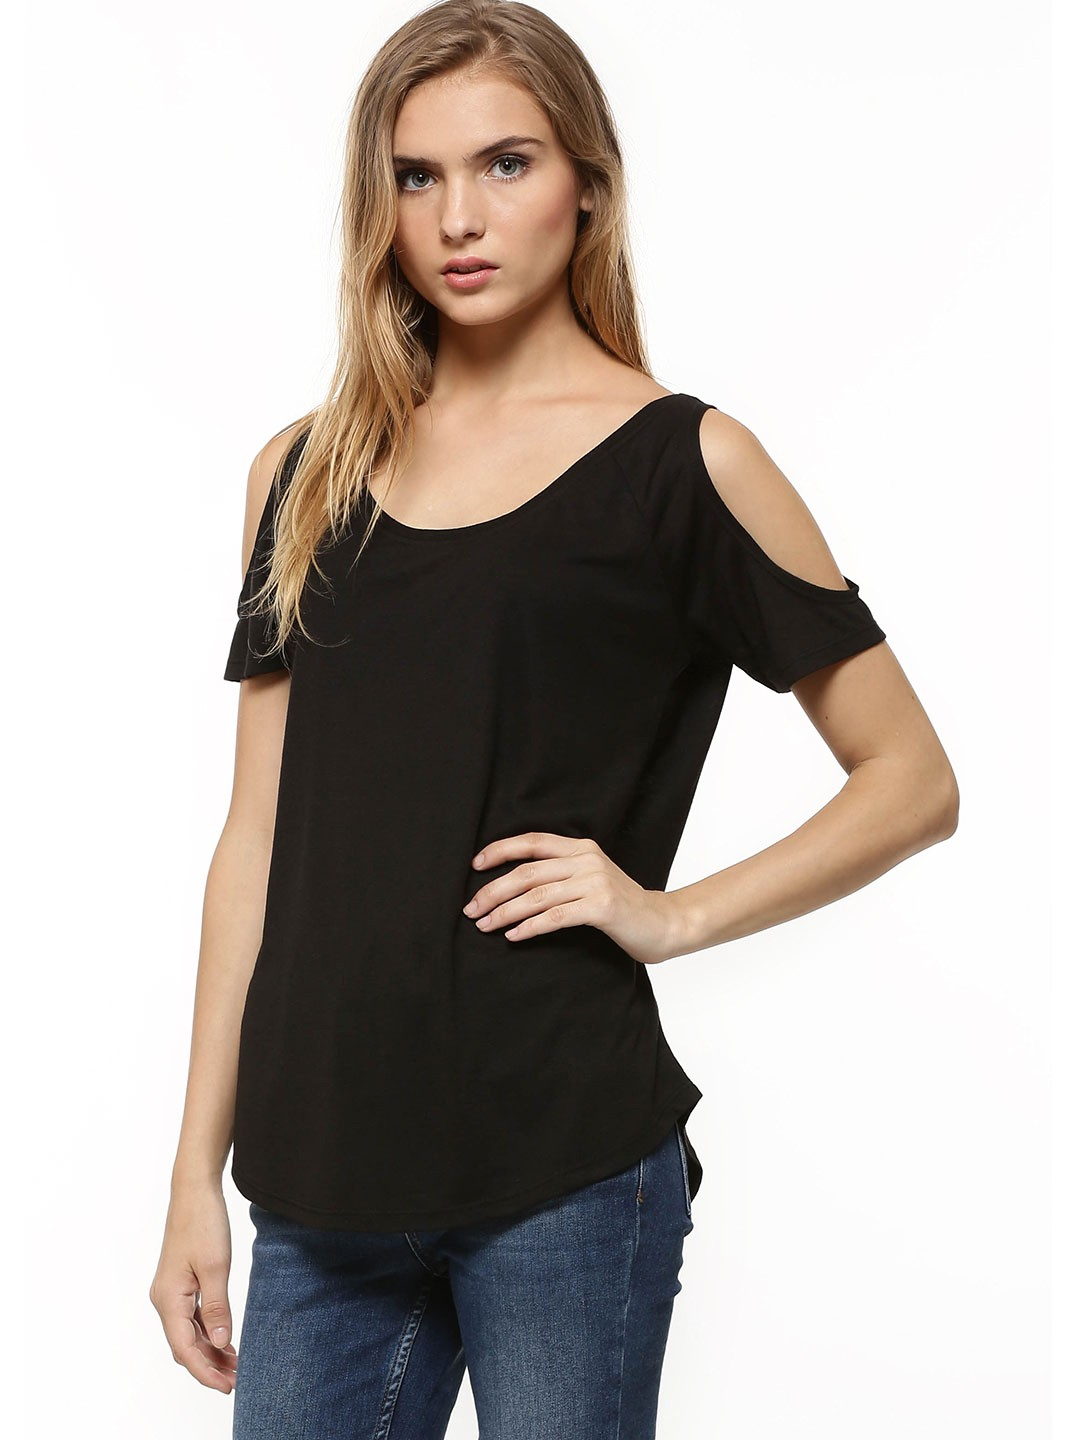 Shop New Look Women's Tops - Tank Tops at up to 70% off! Get the lowest price on your favorite brands at Poshmark. Poshmark makes shopping fun, affordable & easy!